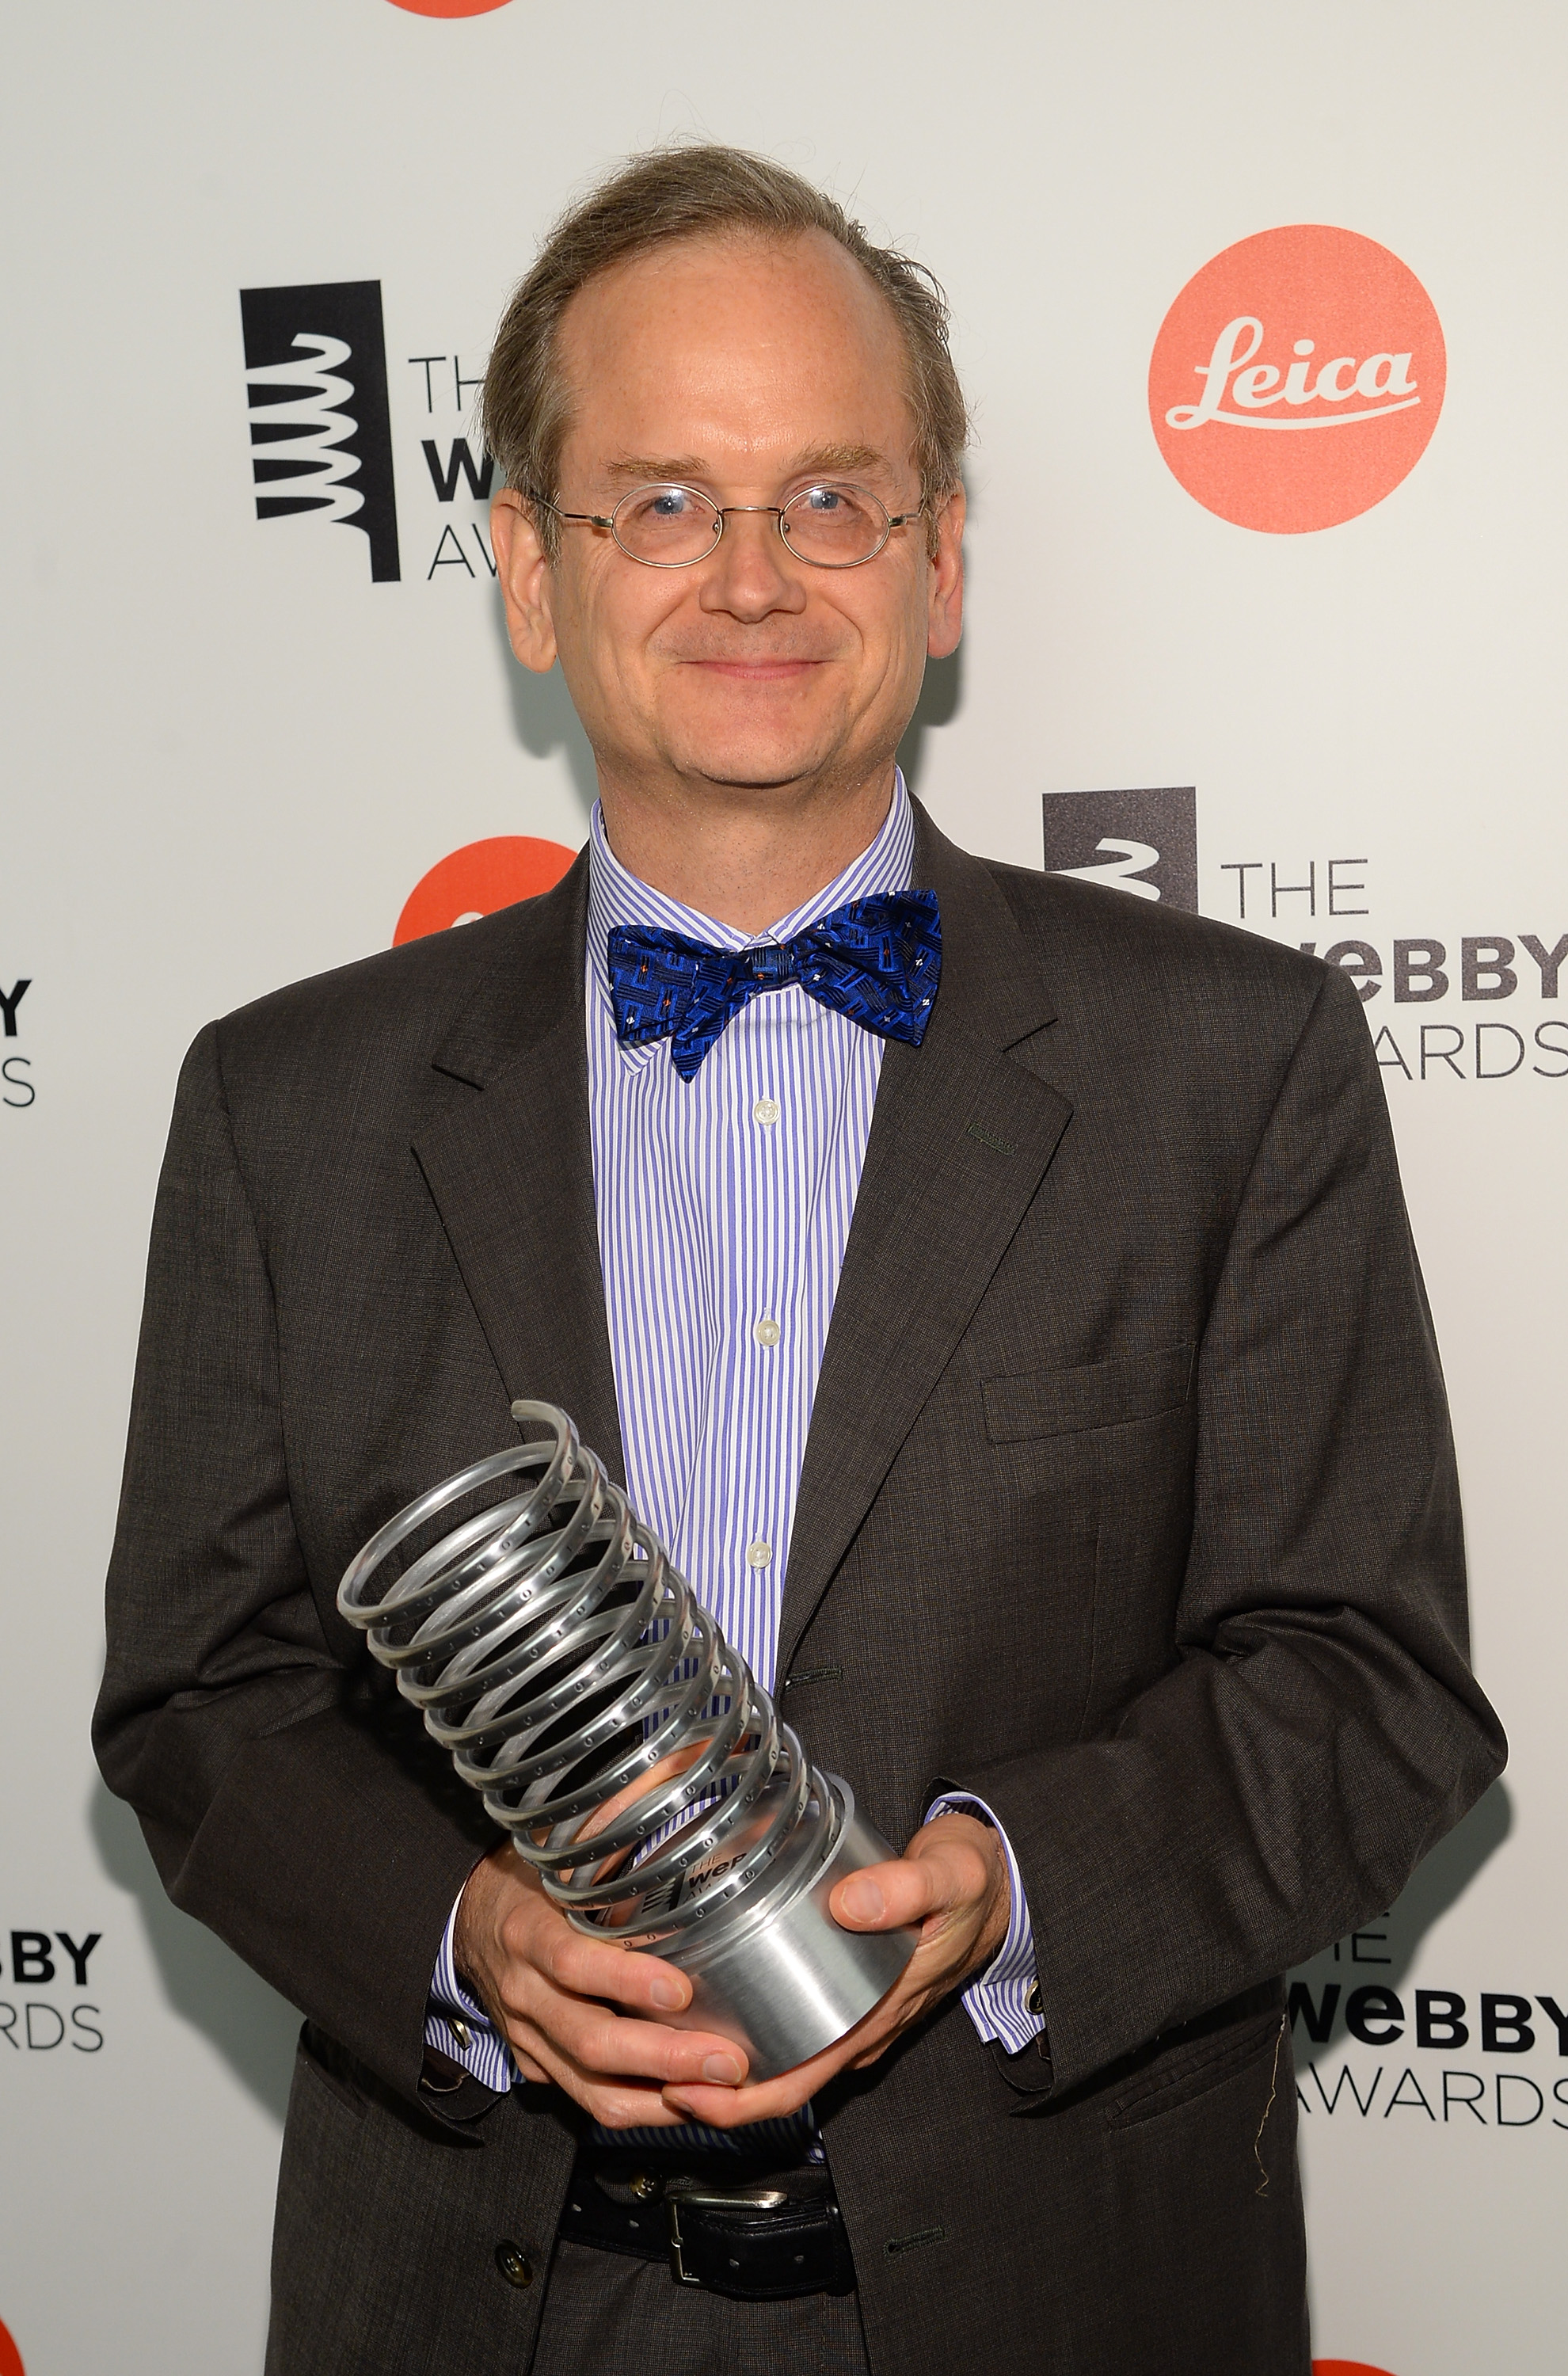 Professor Lawrence Lessig poses backstage at the 18th Annual Webby Awards on May 19, 2014 in New York City.